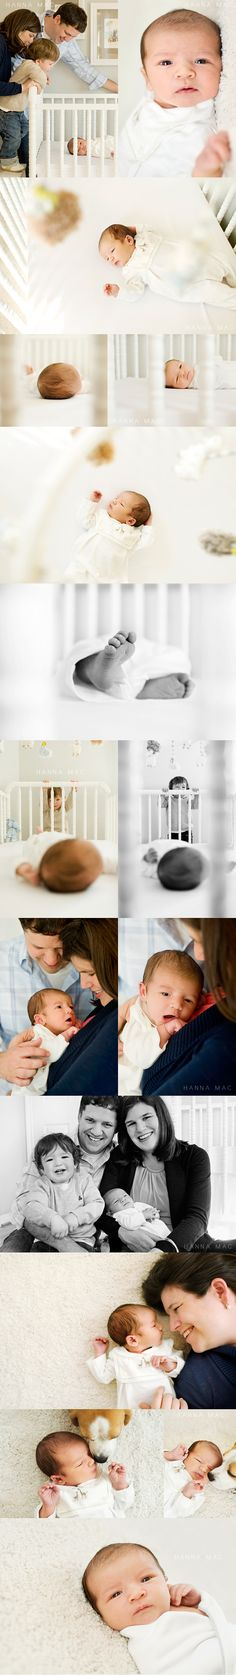 Fun Family Photography Session with Newborn. I love the crib photos.